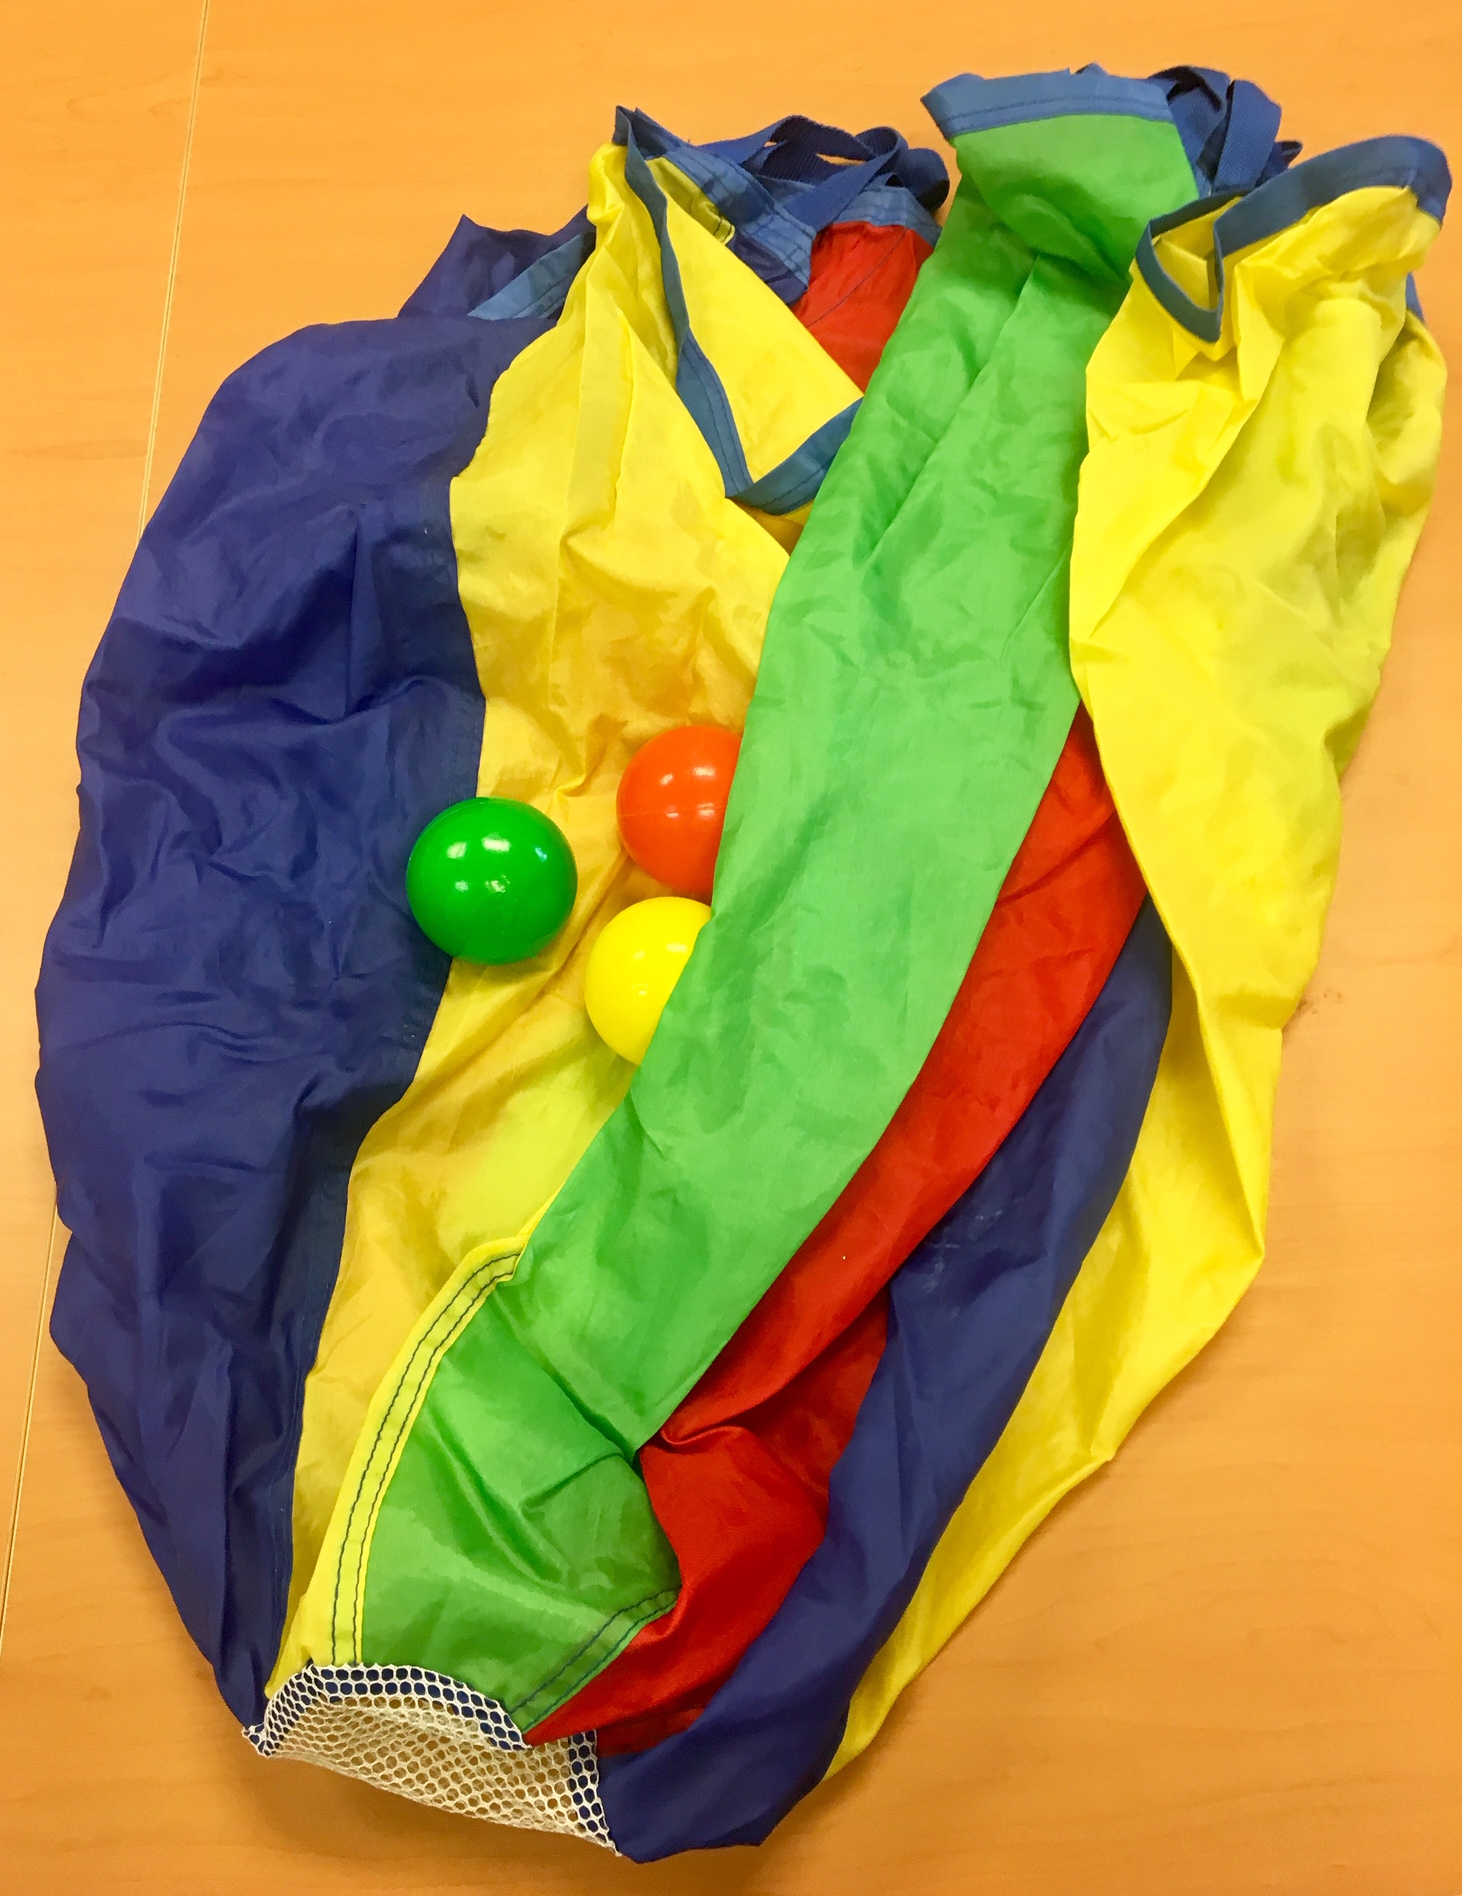 Parachute with balls